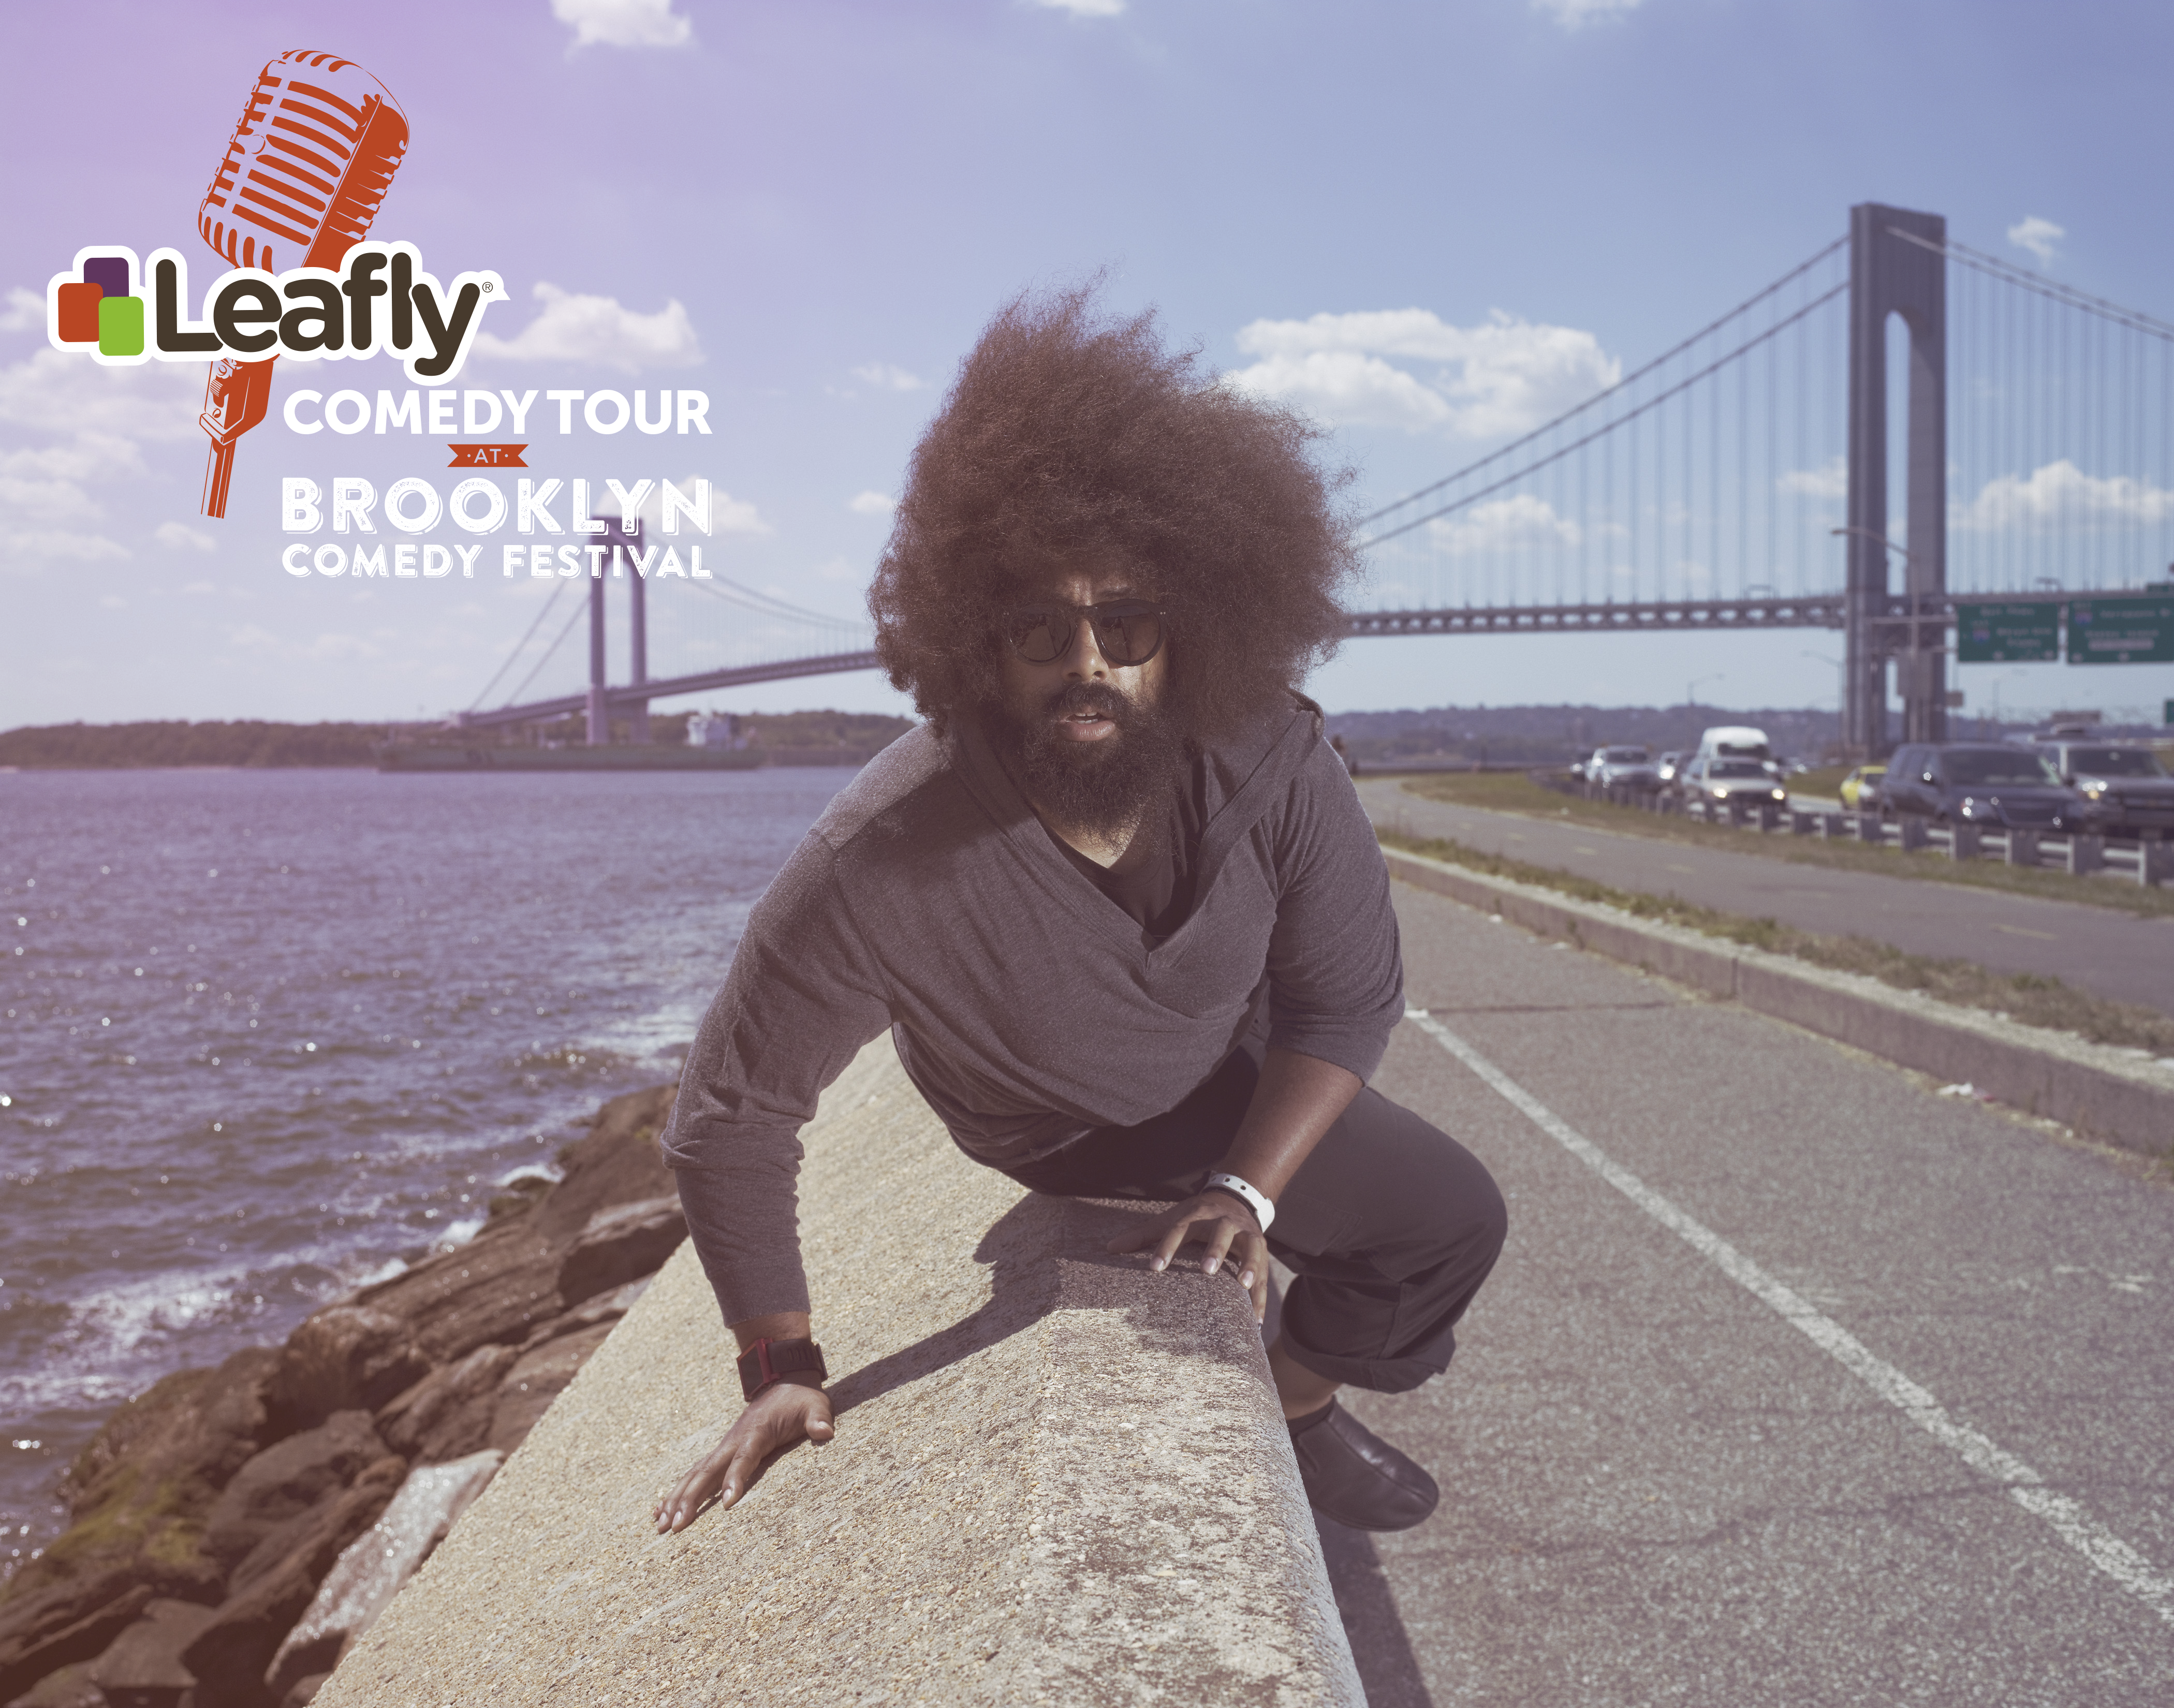 Leafly Comedy Tour at Brooklyn Comedy Festival